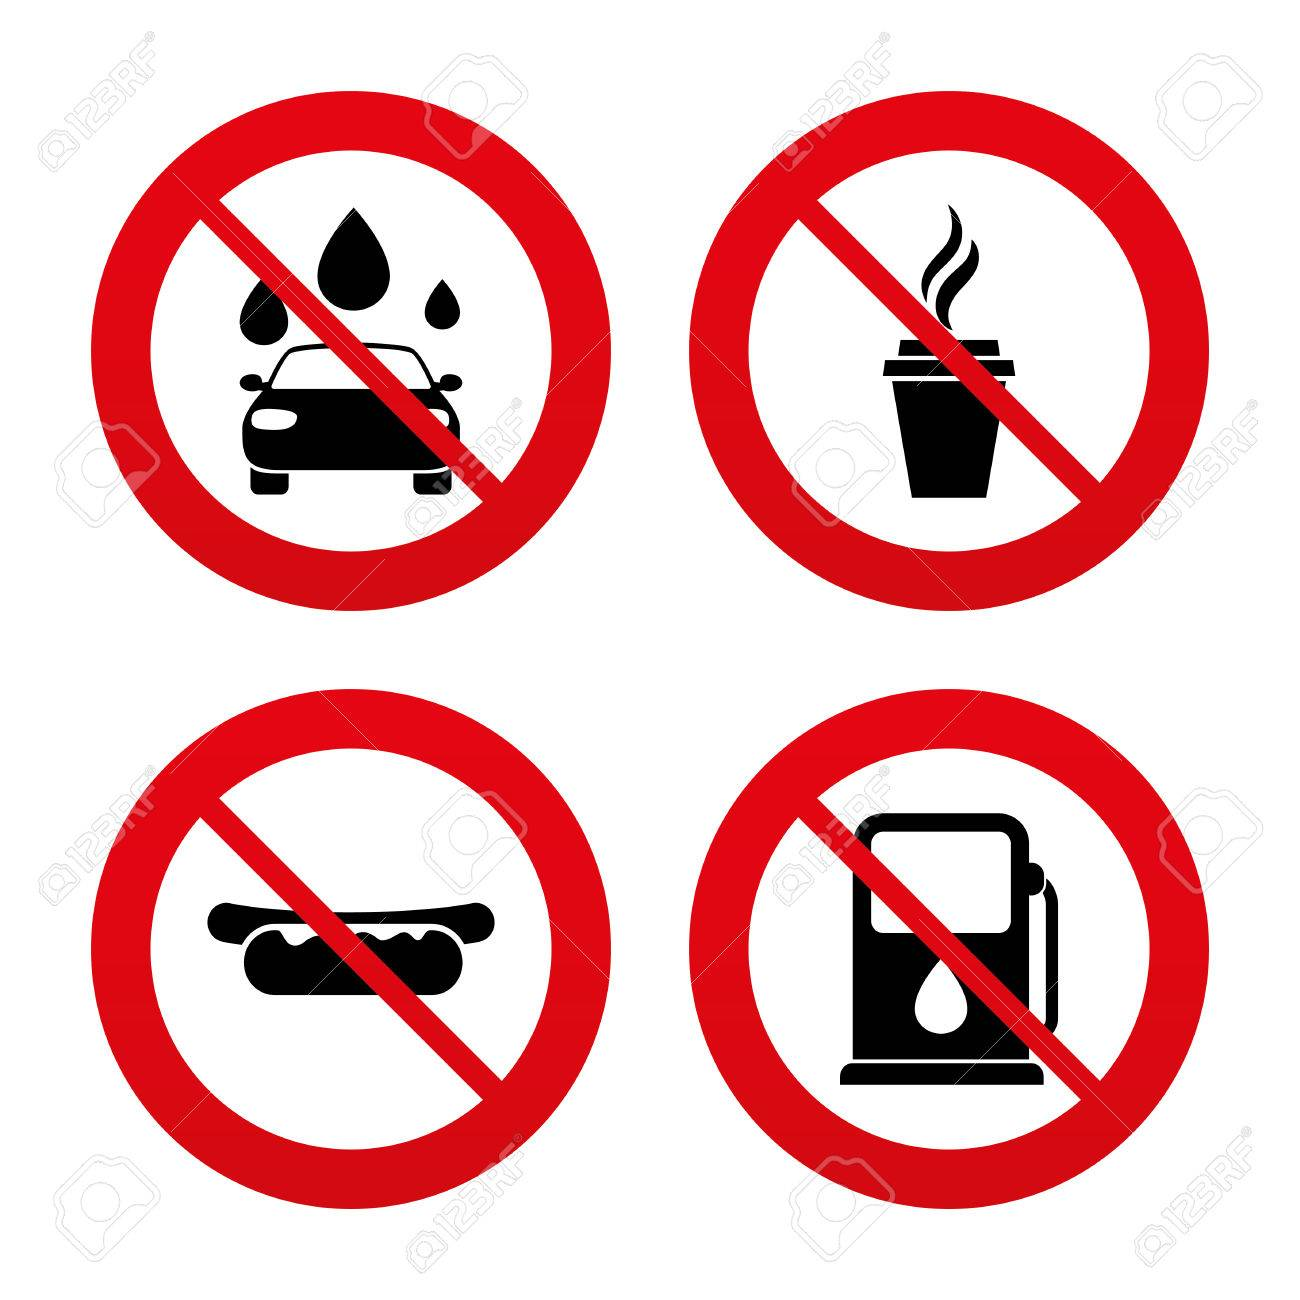 No Ban Or Stop Signs Petrol Or Gas Station Services Icons